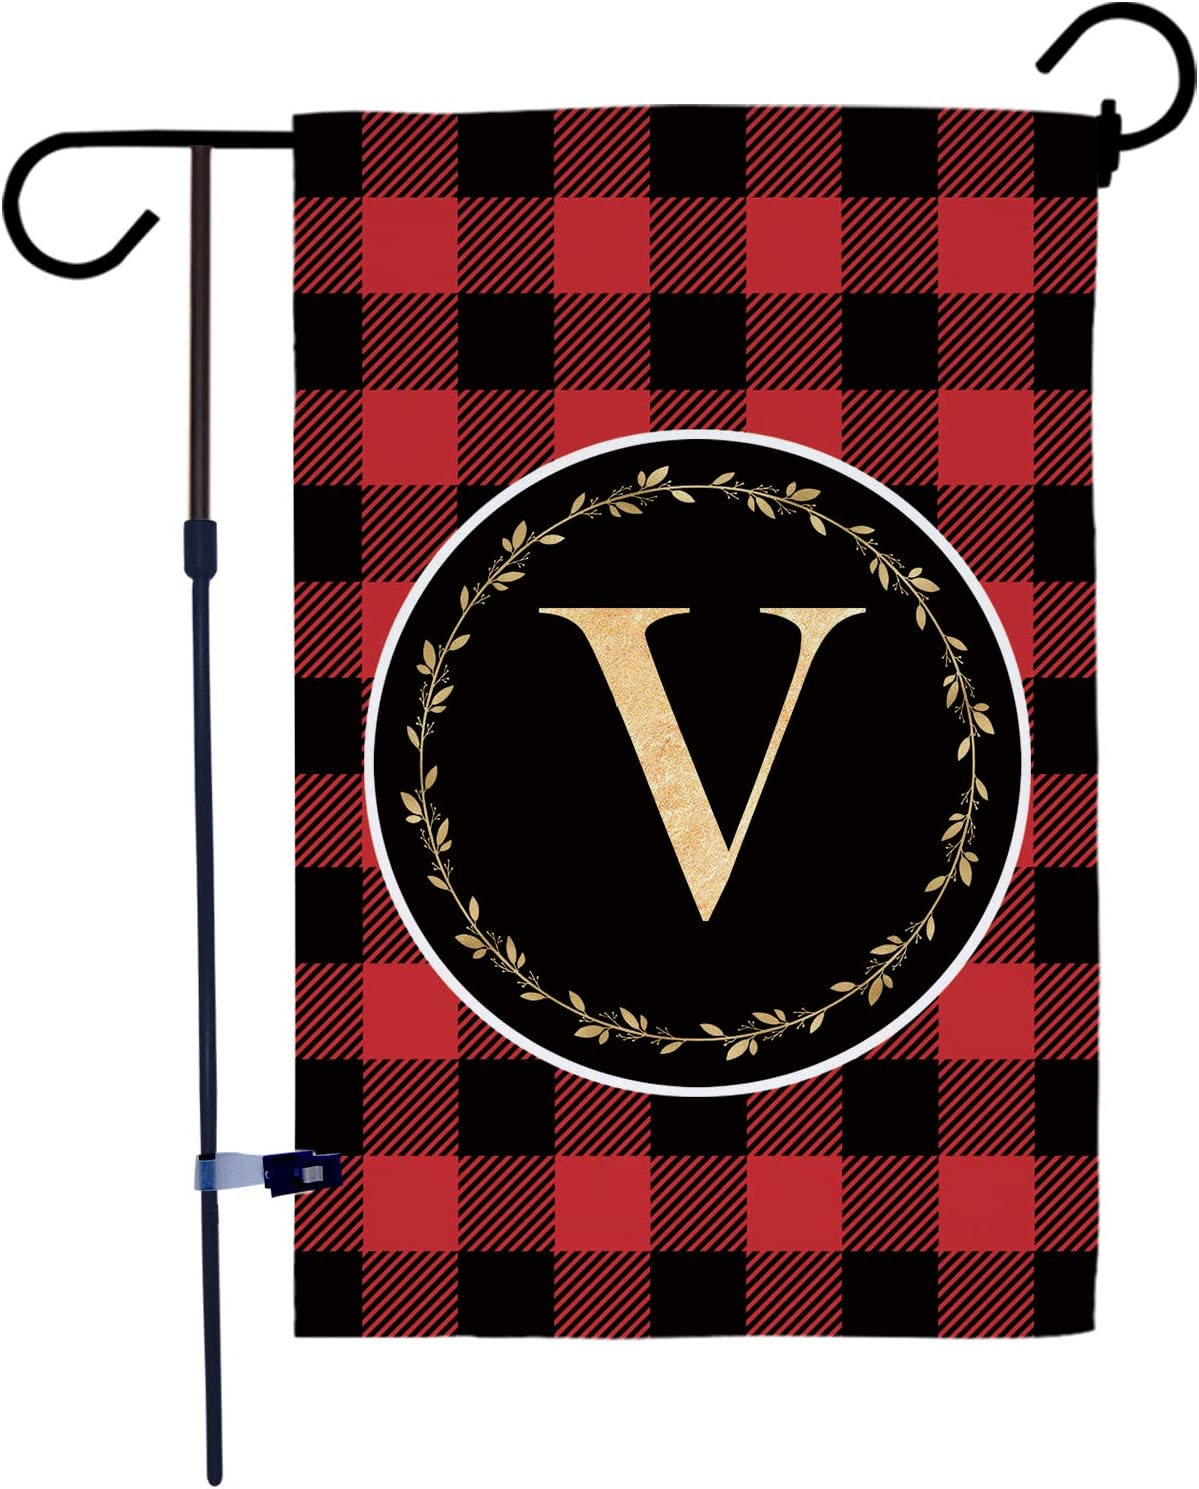 AKPOWER Small Garden Flag Black and Red Plaid Check Vertical Double Sided Farmhouse Burlap Yard Outdoor Decor Classic Monogram Letter 12.5 x 18 Inch V